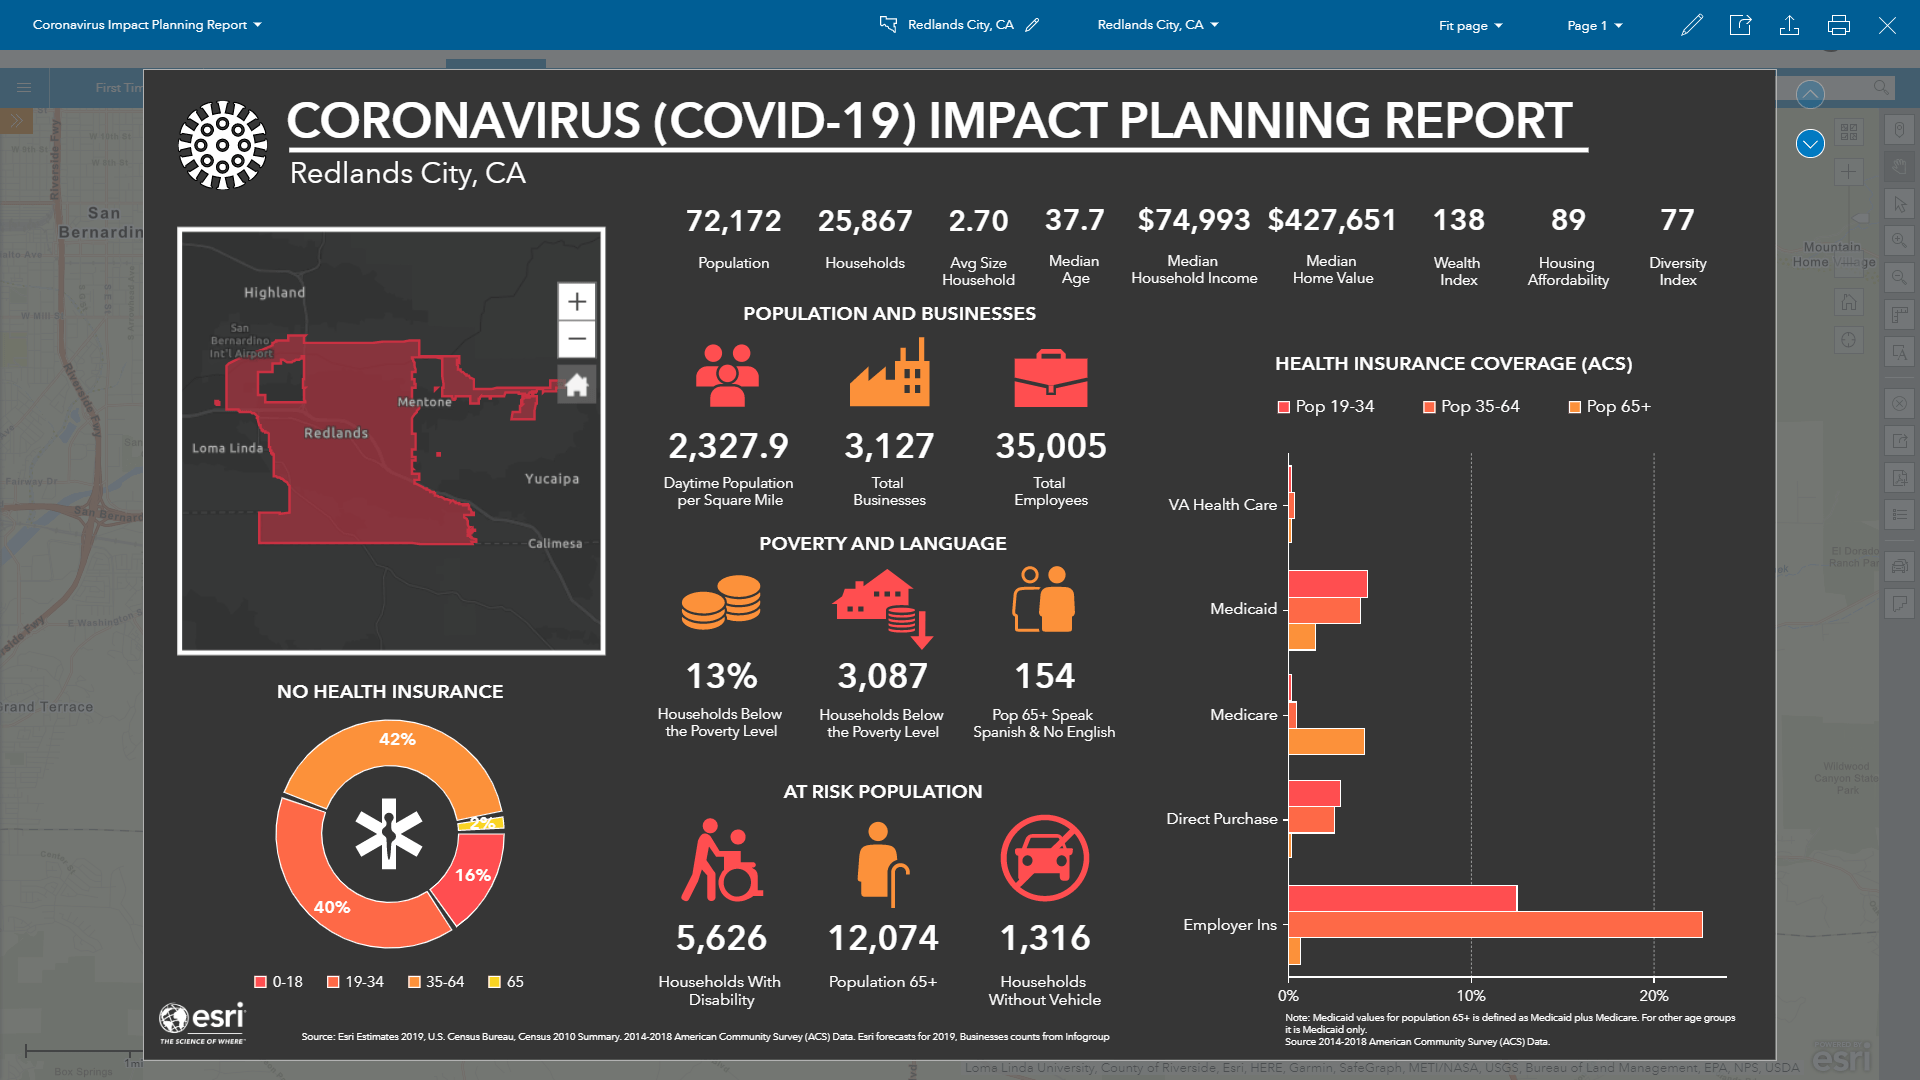 Recolored Infographic